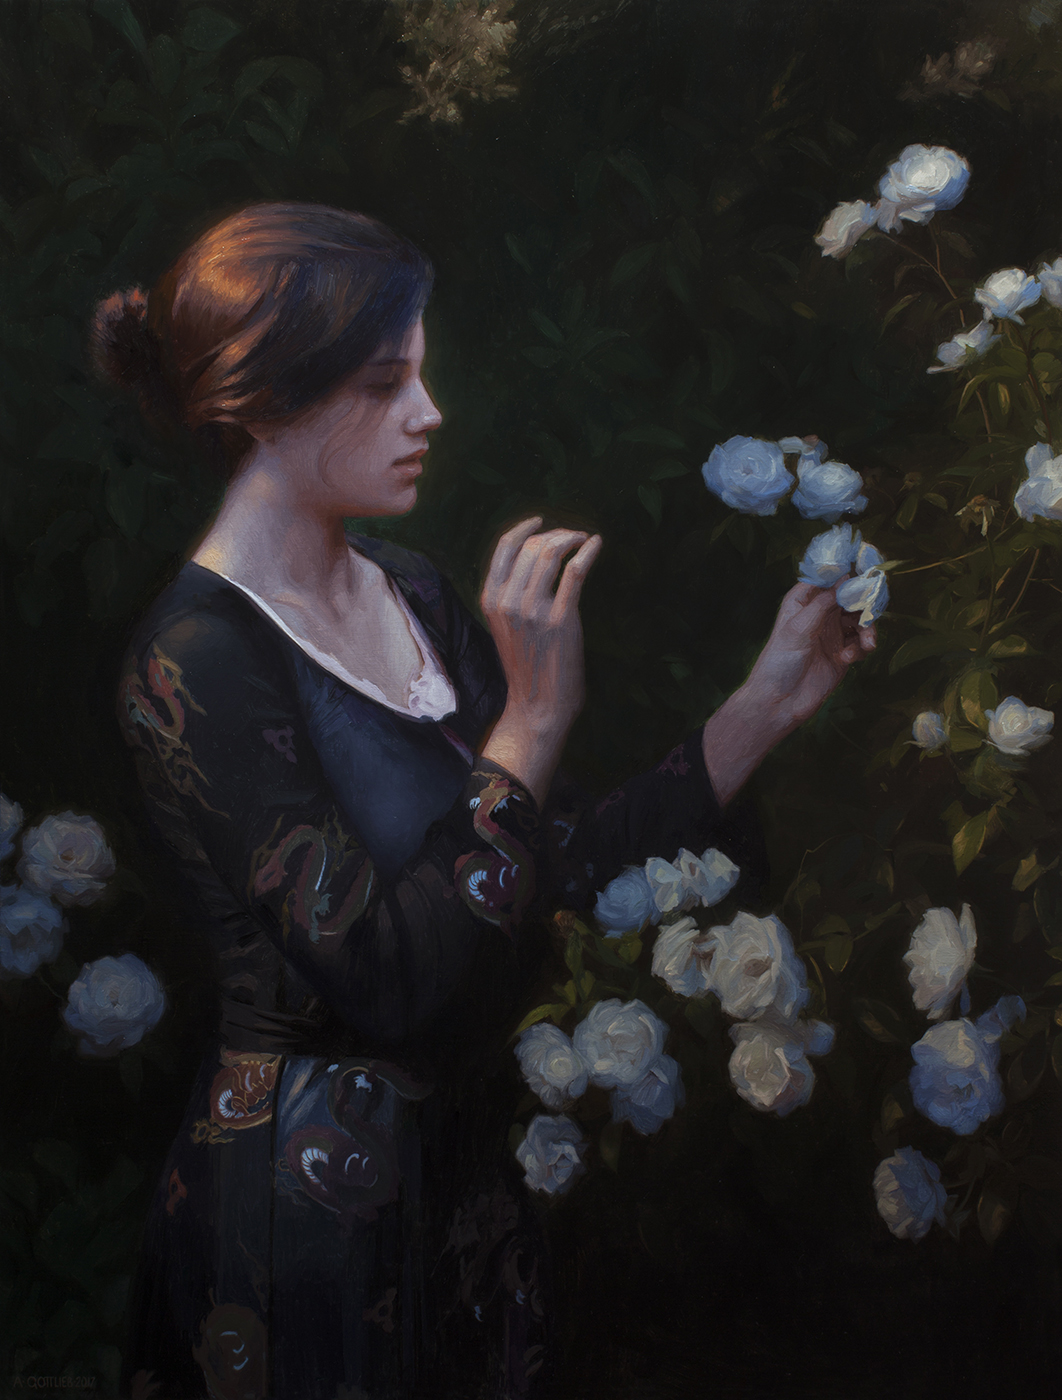 Anticipation, 50 x 35 inches, oil on linen by Adrian Gottlieb